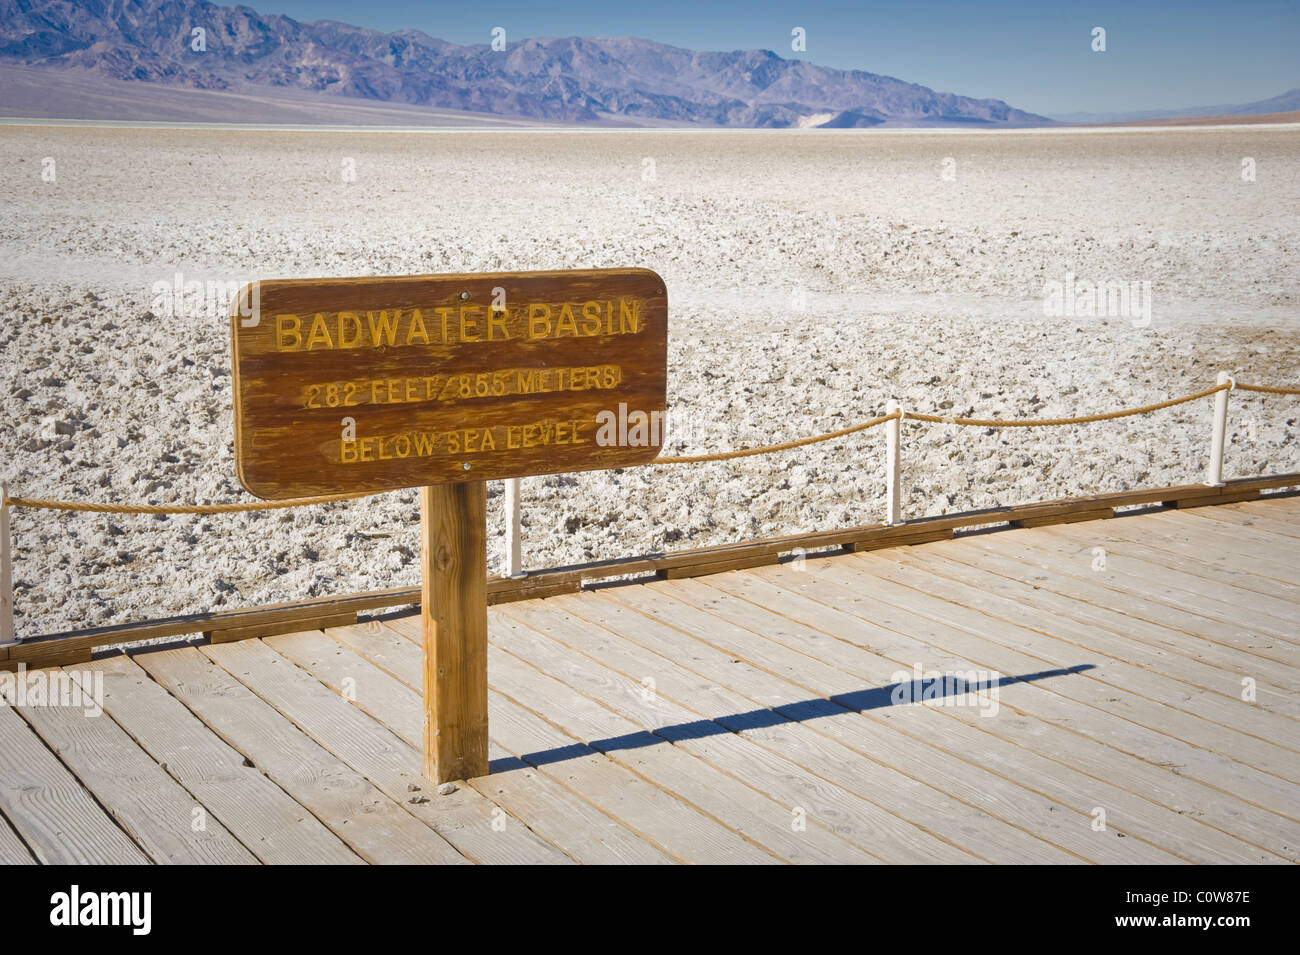 Badwater Basin Sign, Death Valley National Park, California USA - Stock Image